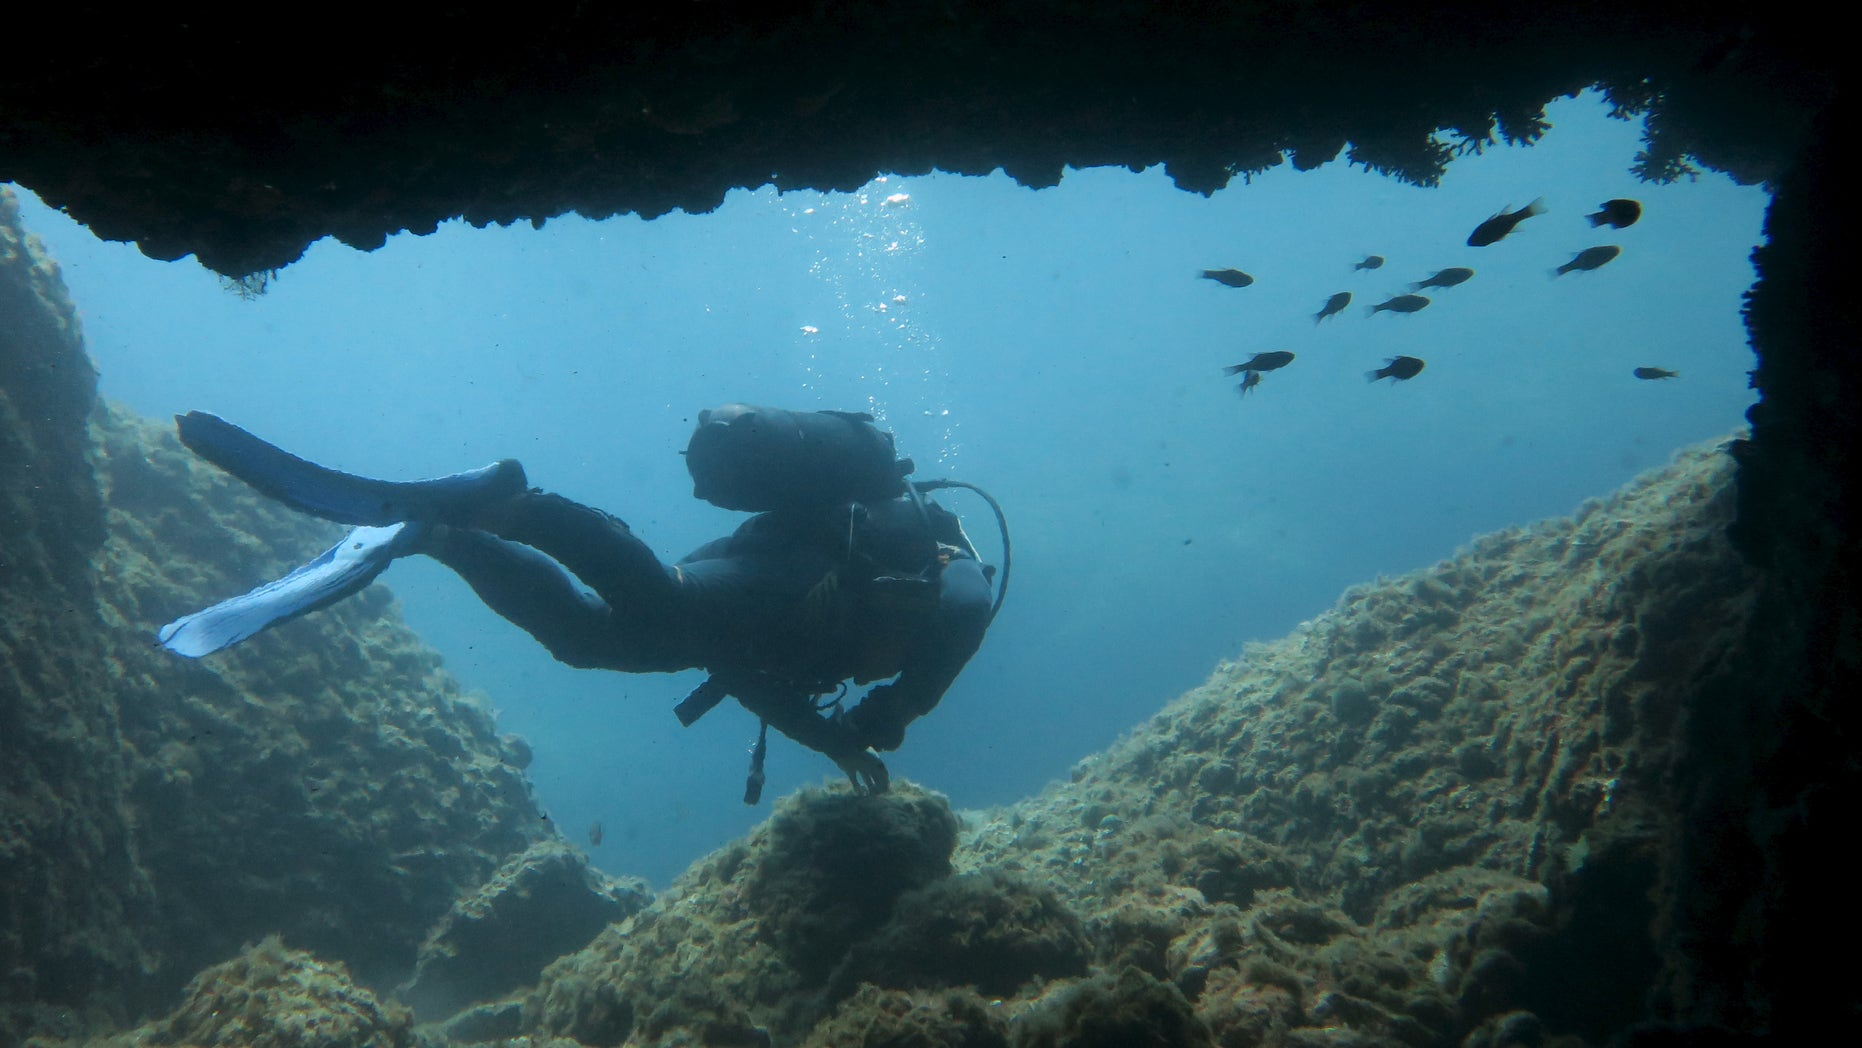 File photo: A scuba diver makes his way out from from an underwater passageway at Isola Bella in Taormina, Italy, at the start of summer holiday season on the Mediterranean island of Sicily July 5, 2015. (REUTERS/John Schults)